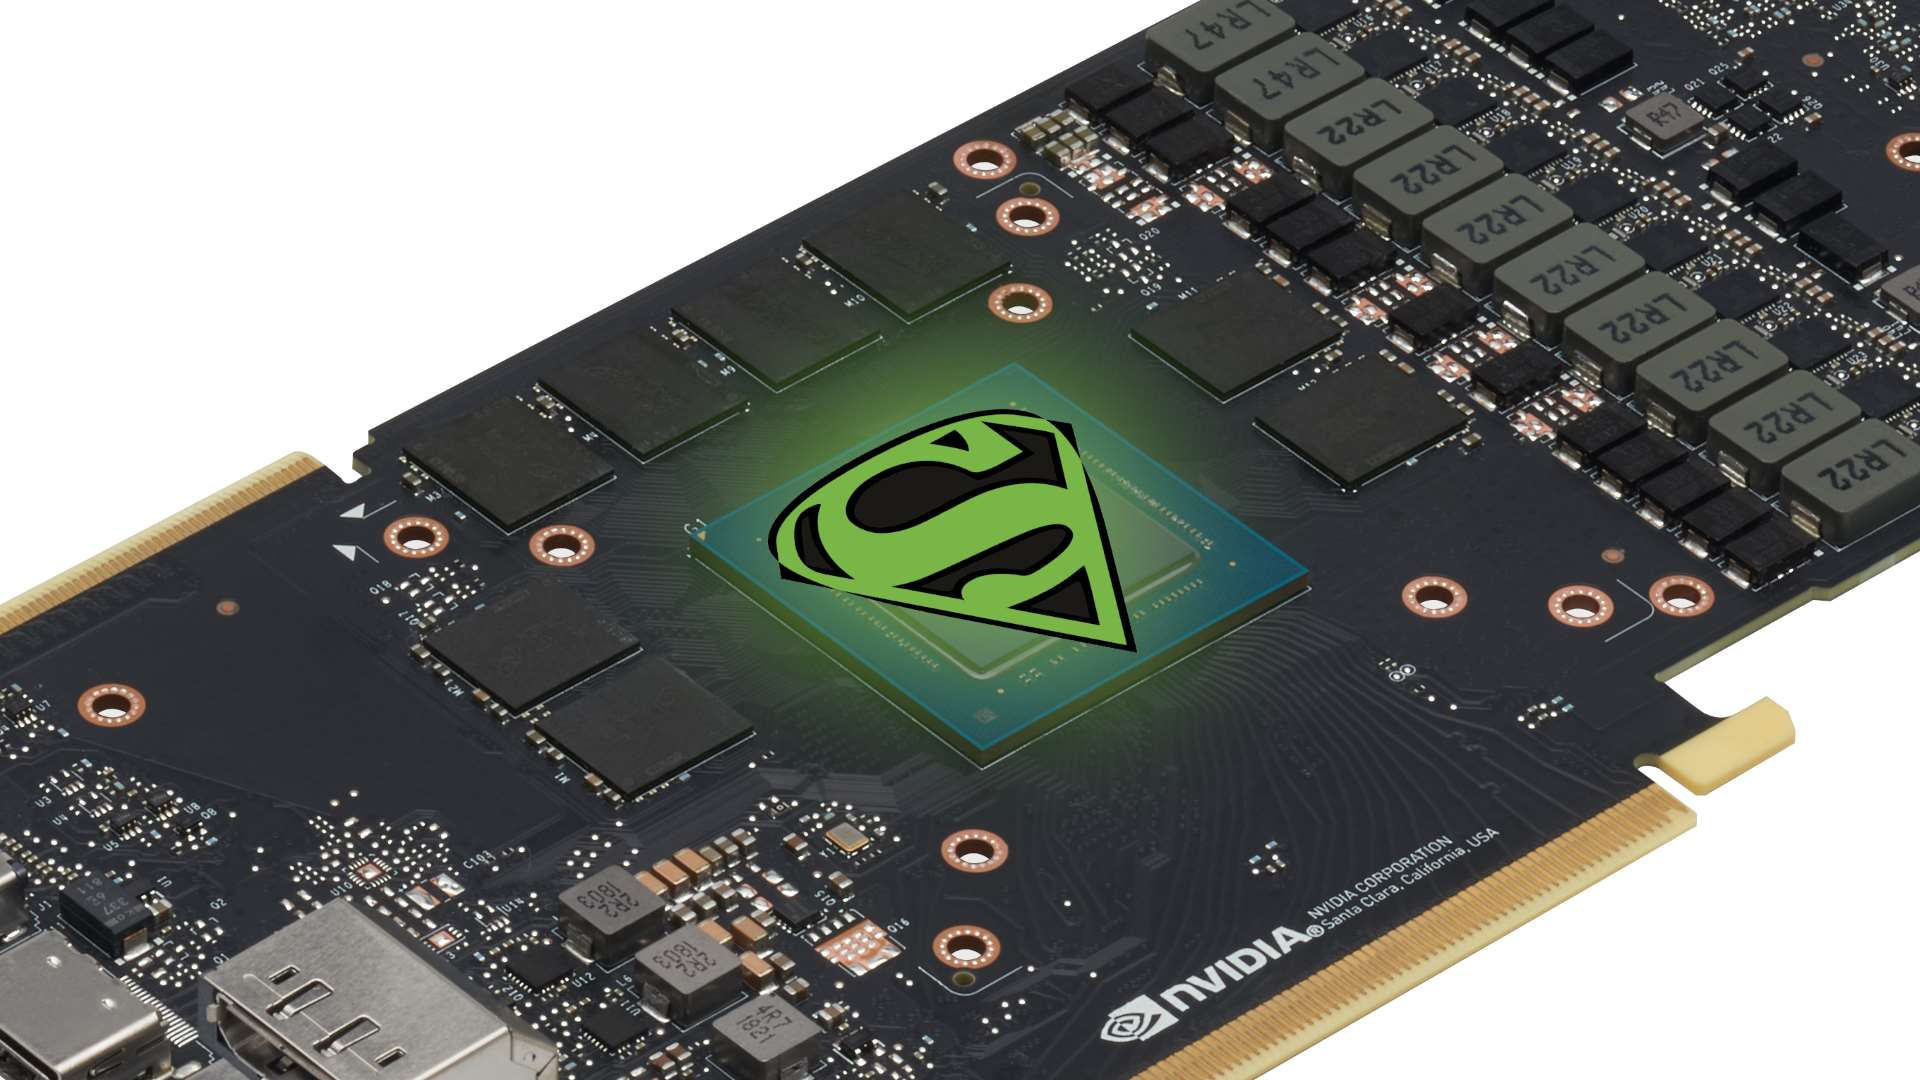 Leaked Nvidia 2080 Ti Super GPU turns out to be an RTX Tesla